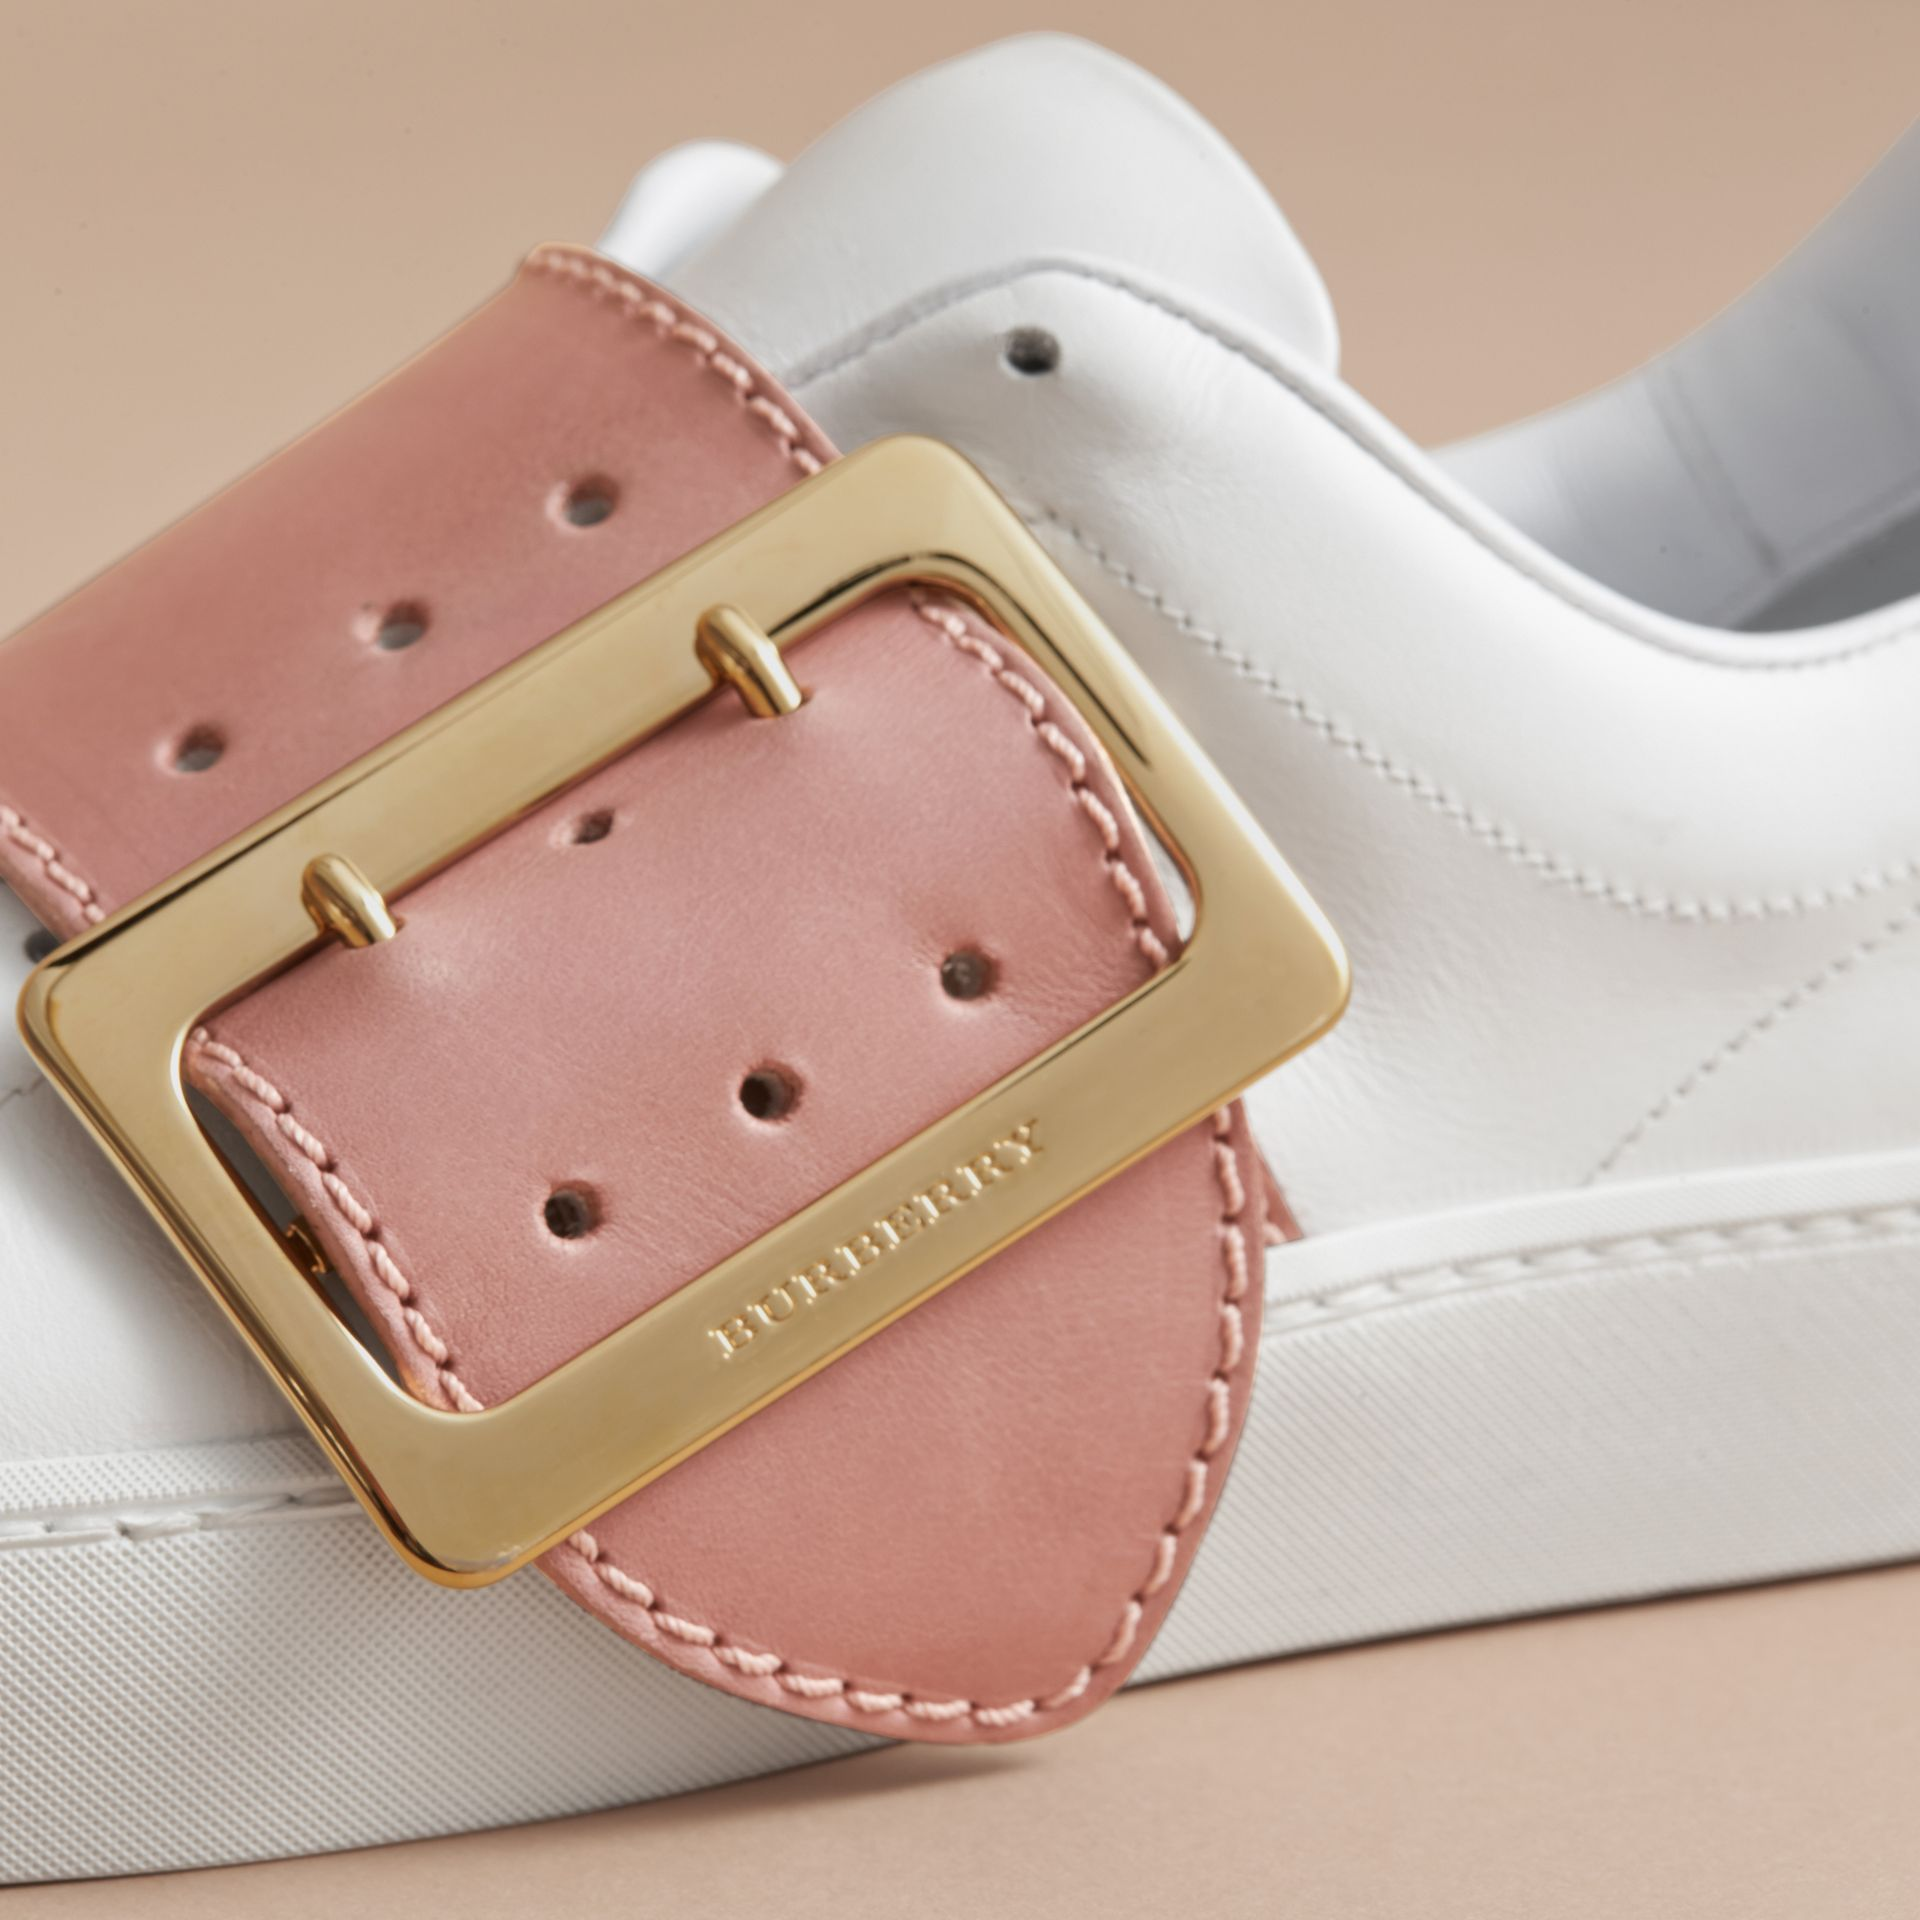 Buckle Detail Leather Trainers in Pink Apricot - Women | Burberry Singapore - gallery image 2